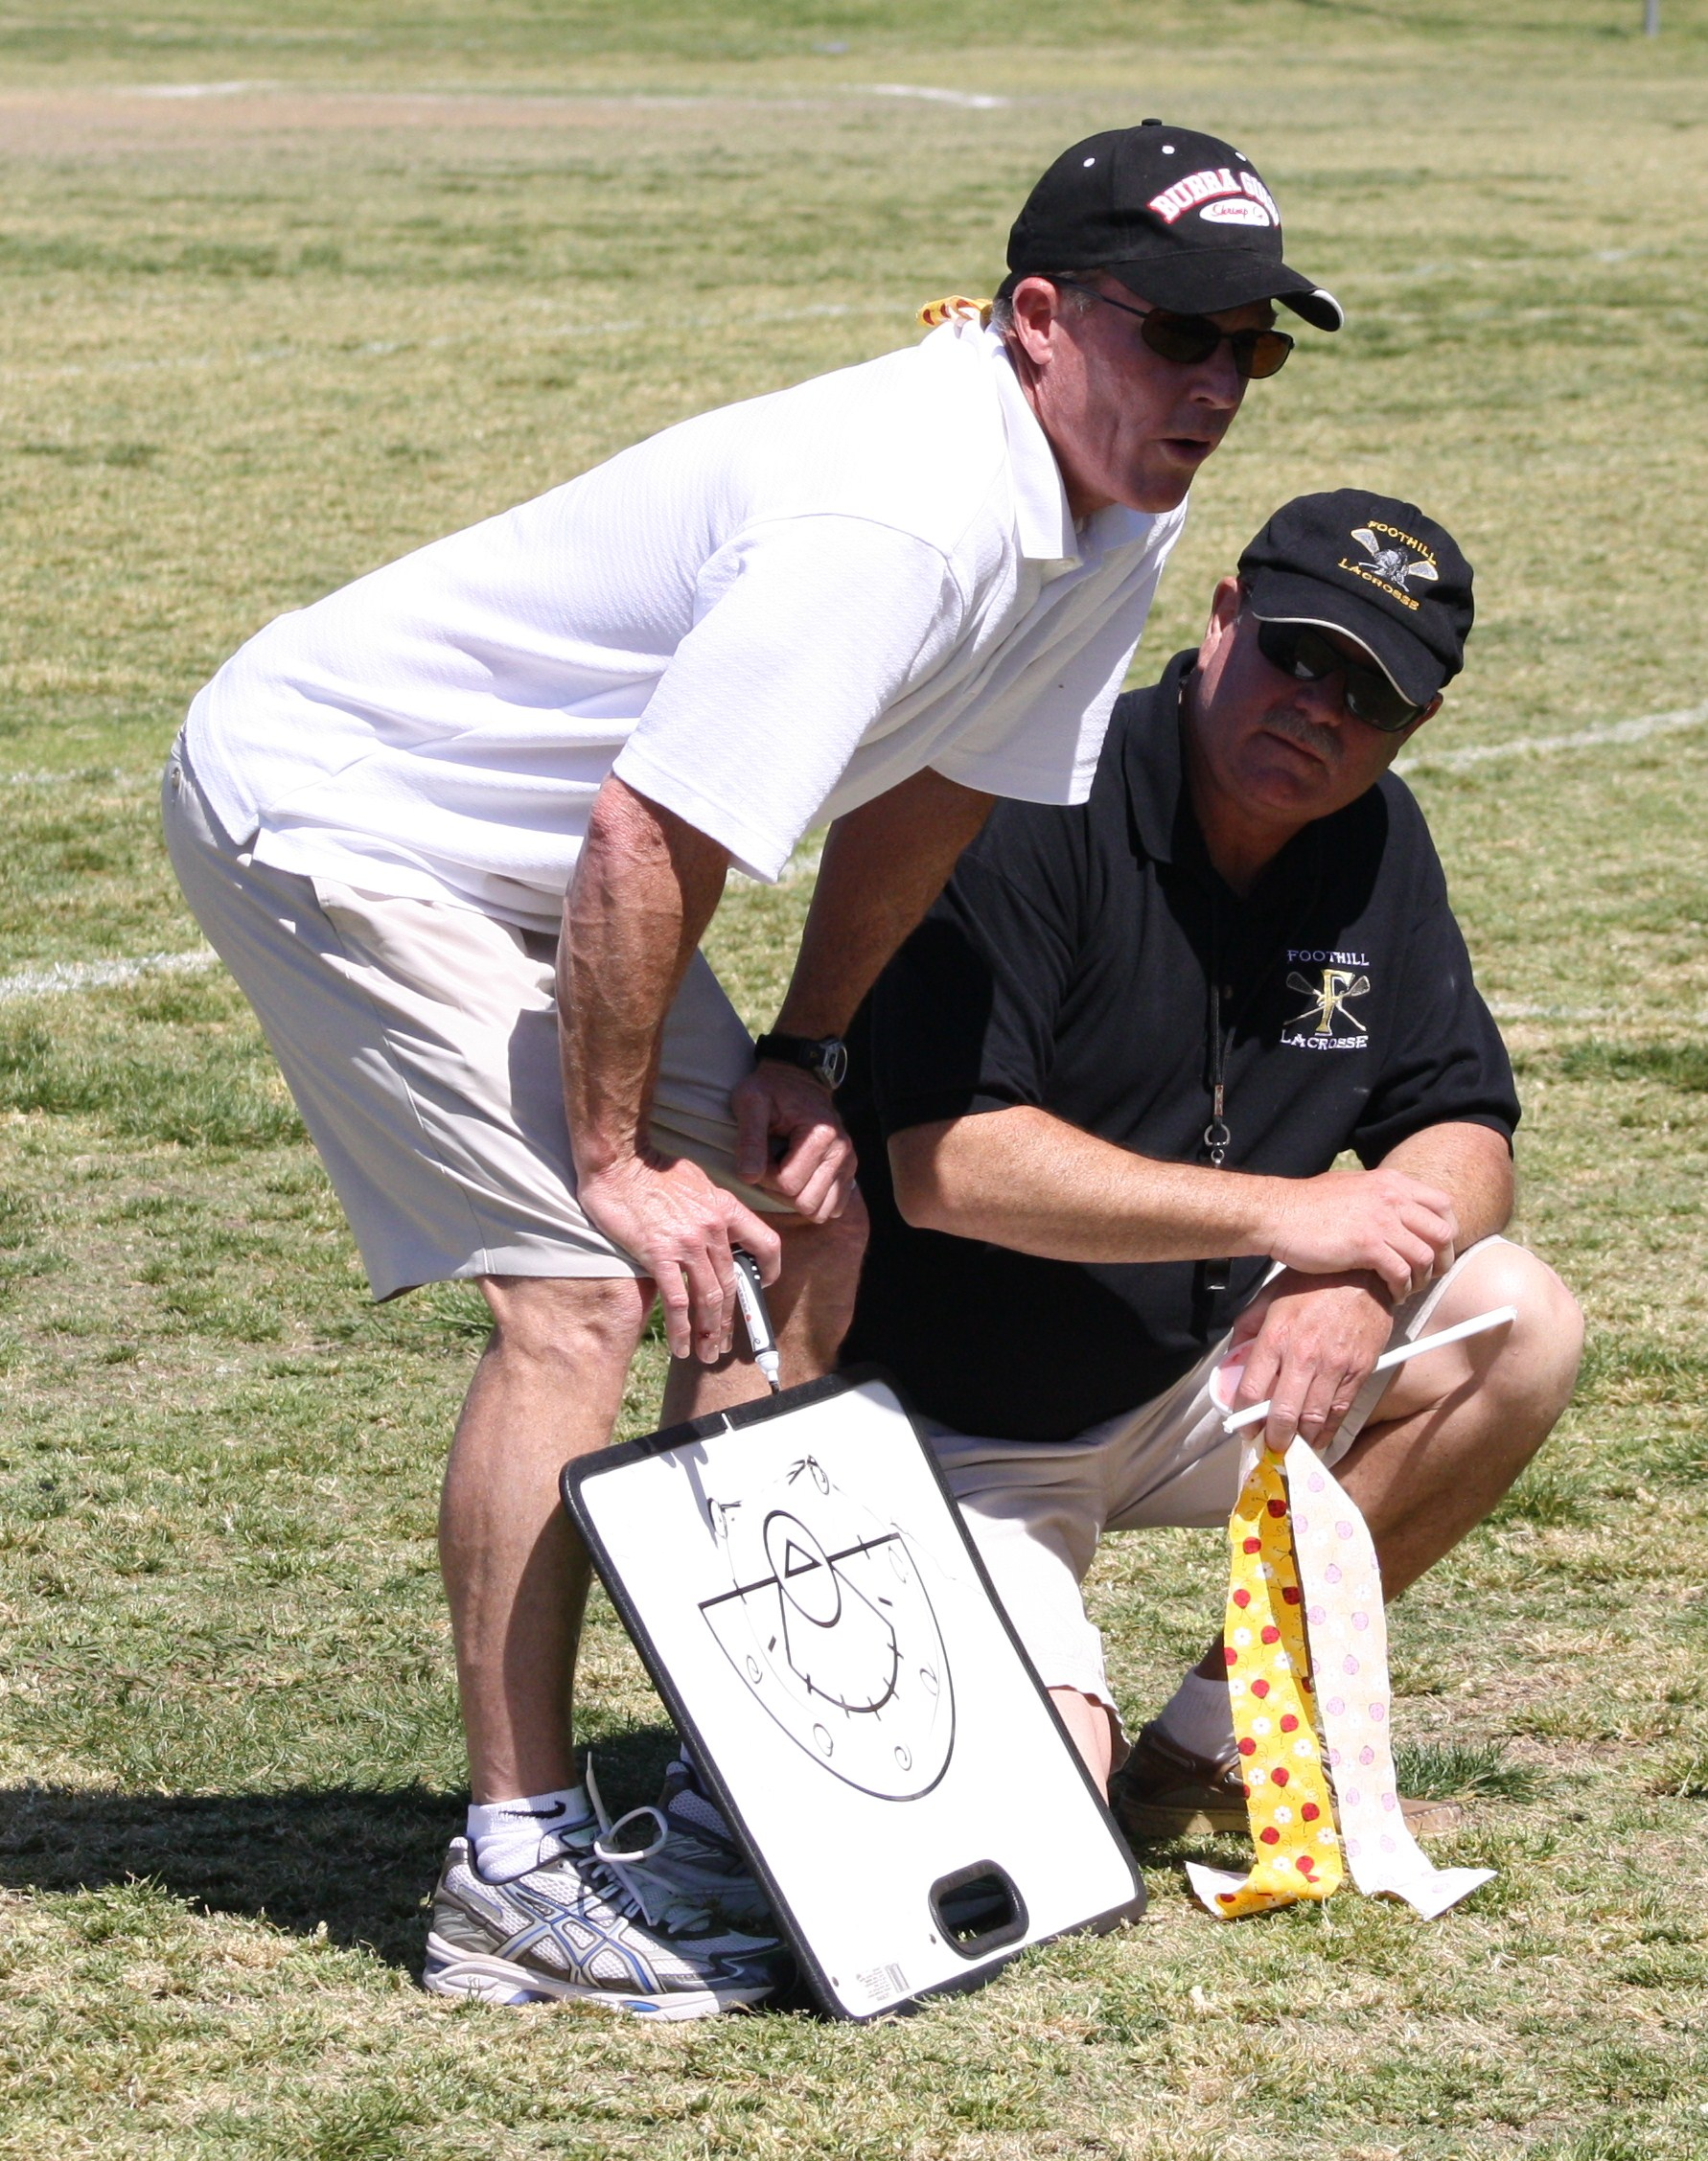 Foothill Varsity Girls Lacrosse Head Coach Brian Cross (right) and Coach Chris Cummins discuss strategy before game with Cate School.